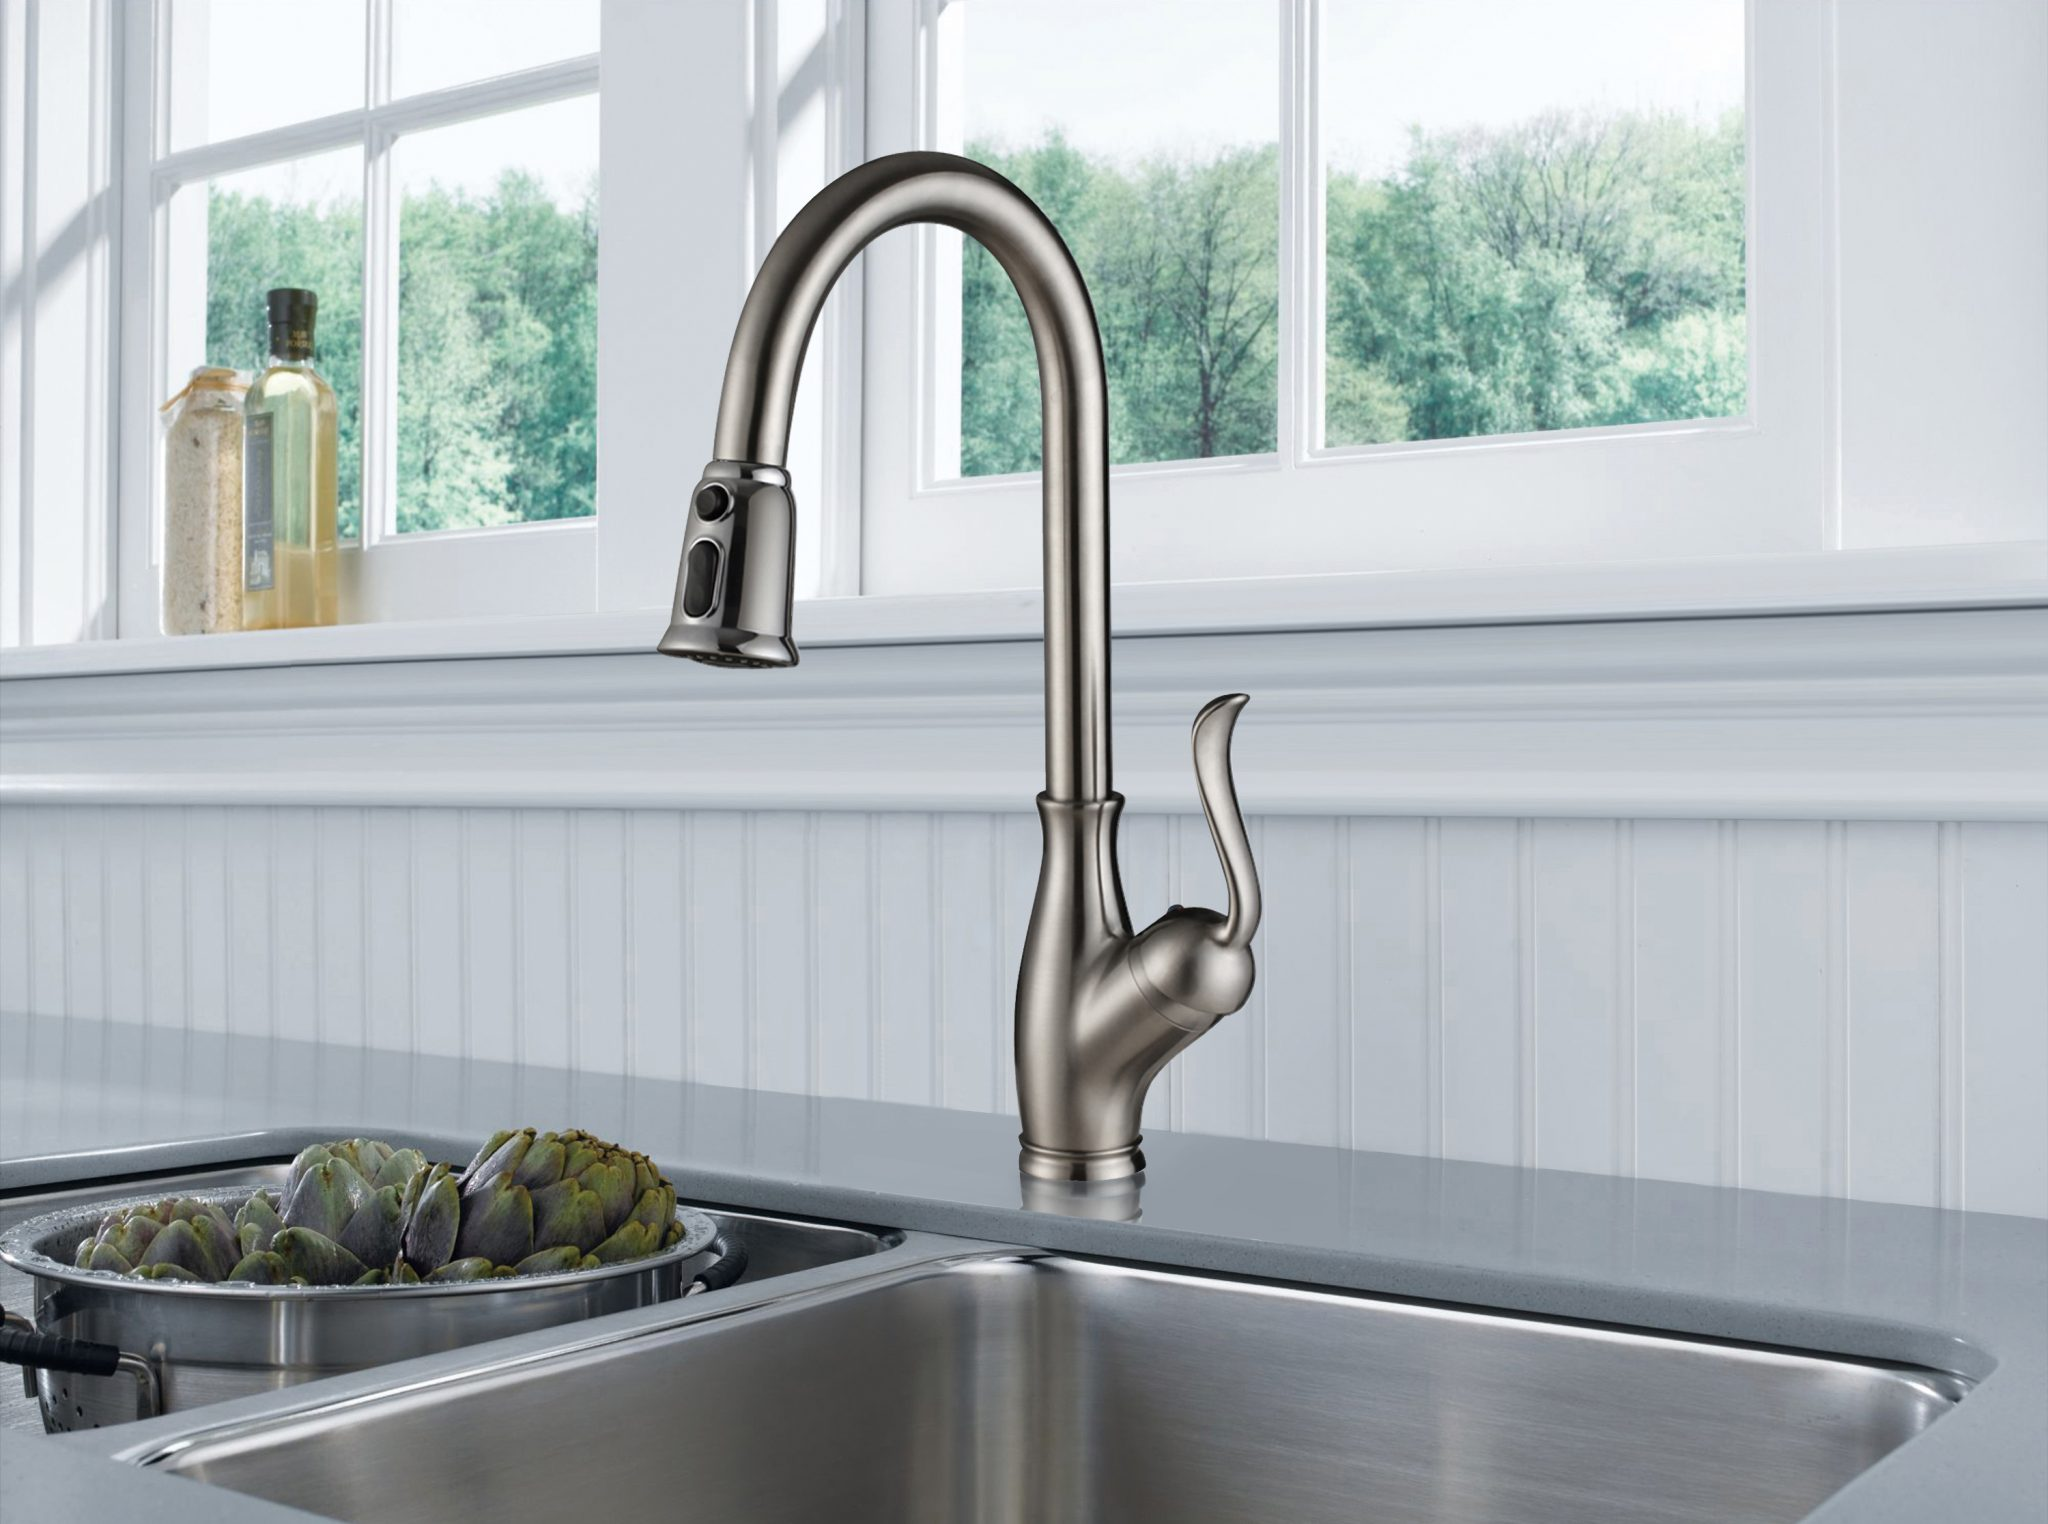 Single Handle Pull-Down Kitchen Faucet -KSK1114C – OAKLAND